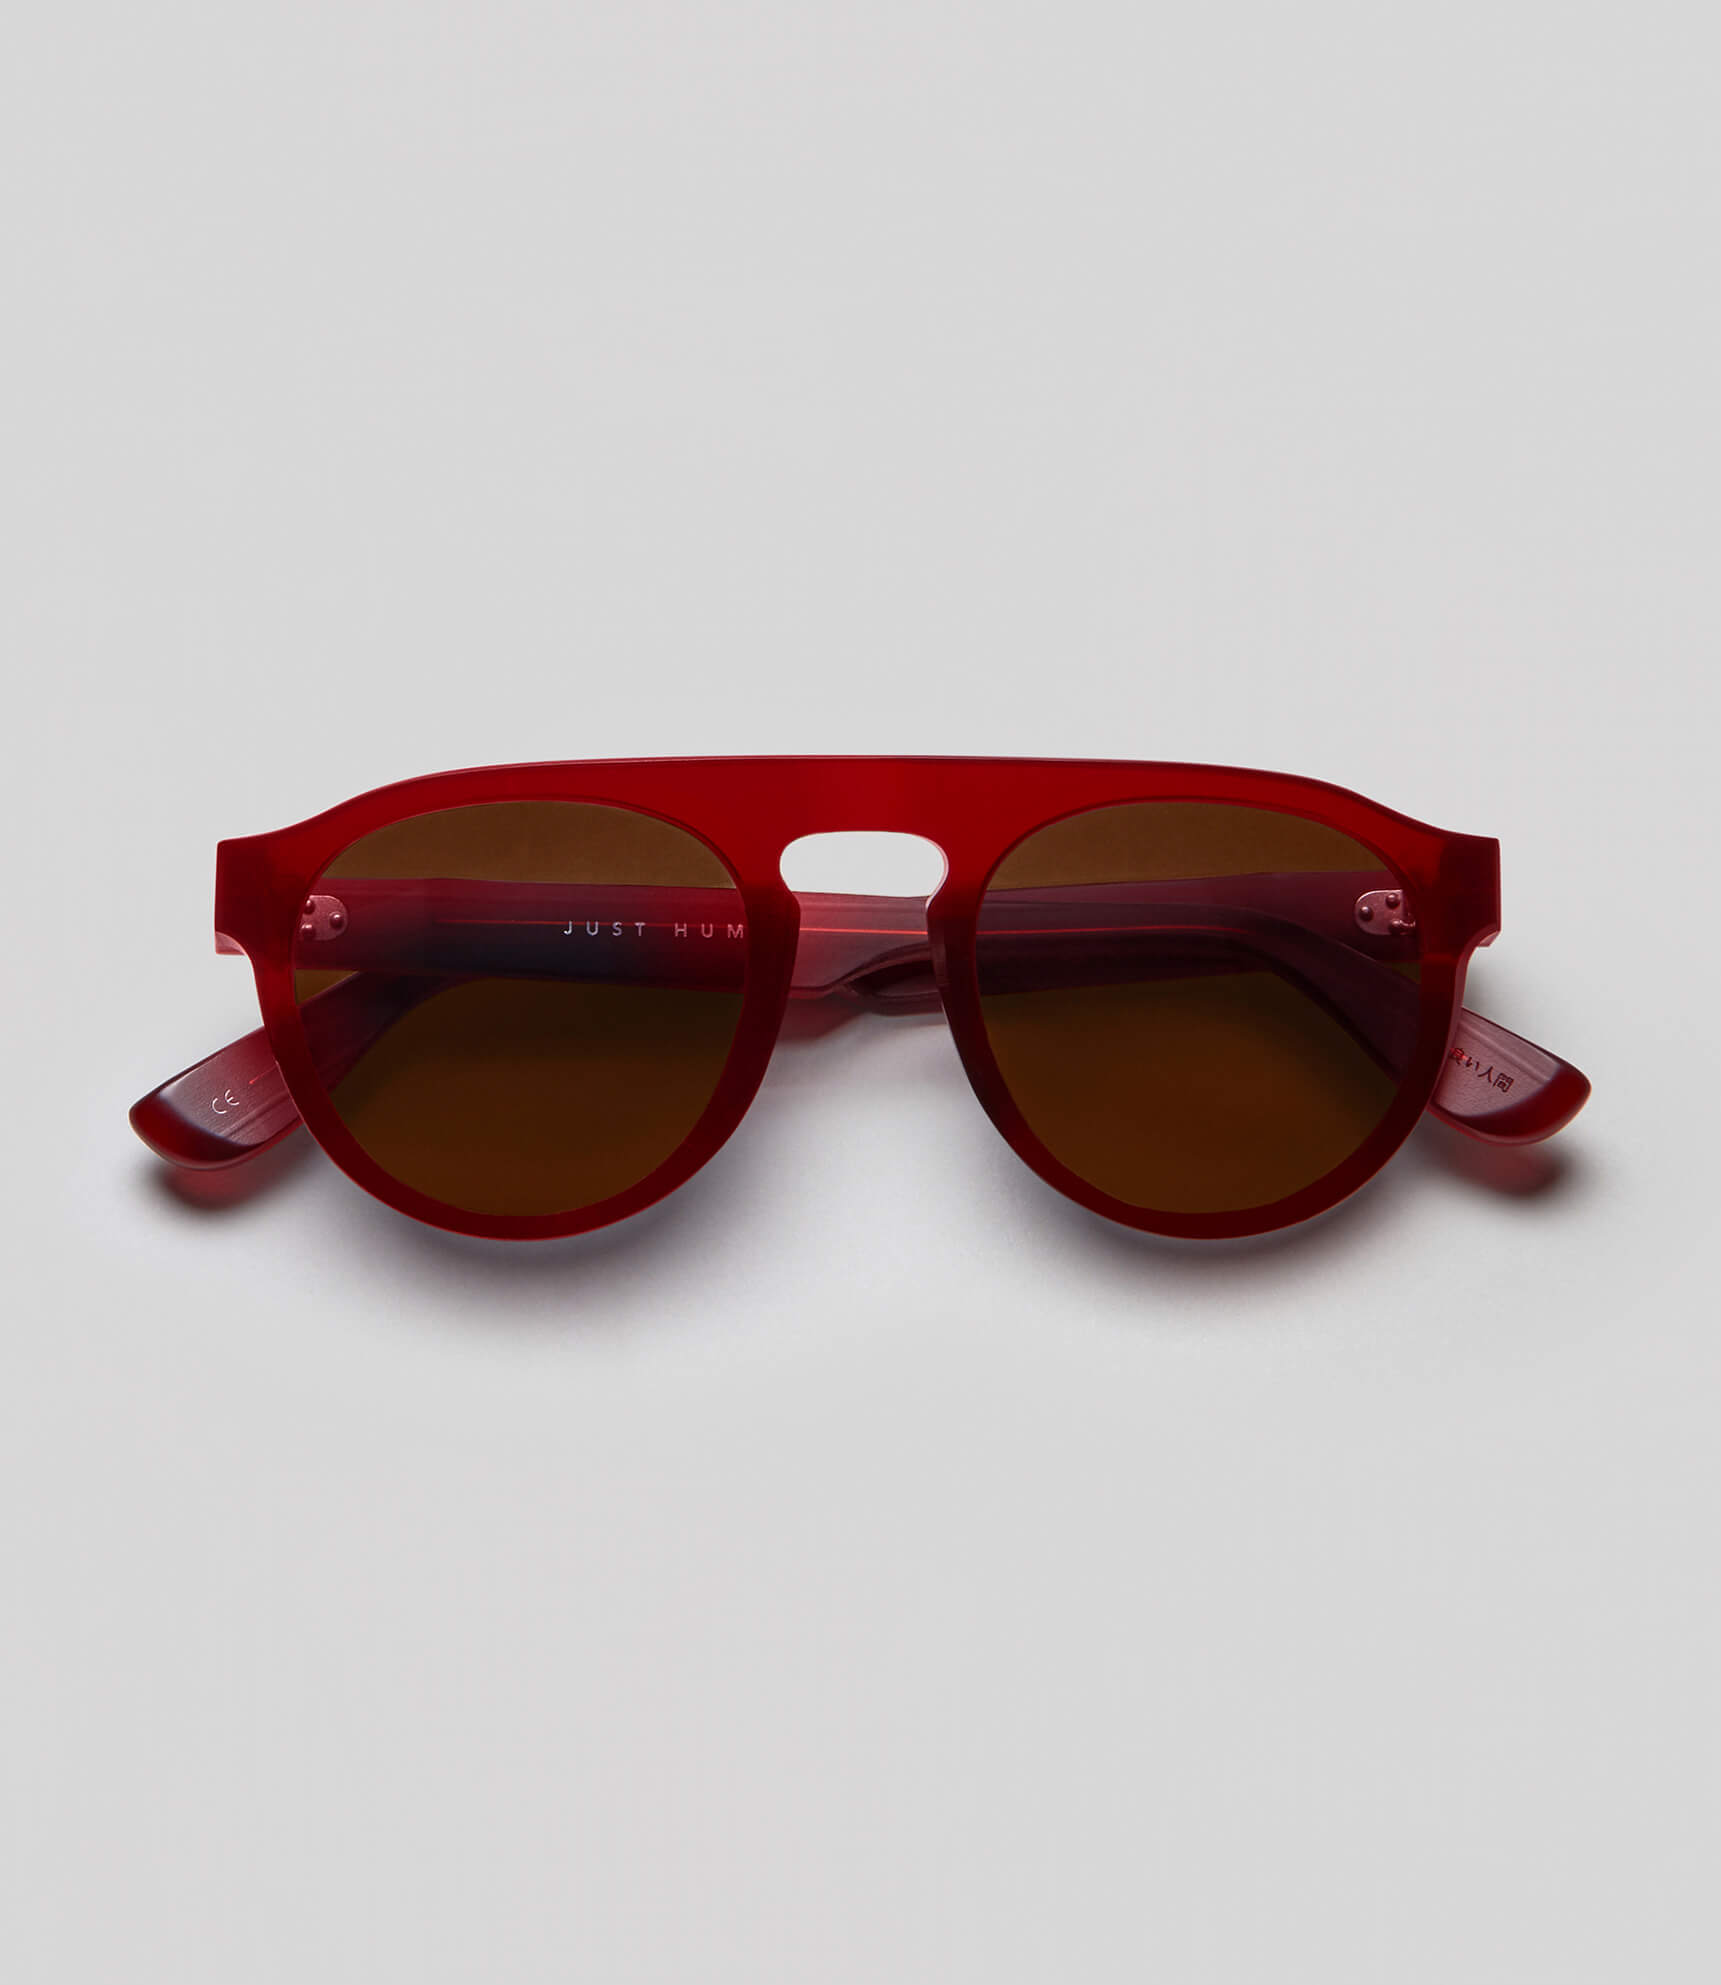 Red aviator sunglasses eco friendly sustainable fashion made in Japan unisex sunglasses for men sunglasses for women and blue light filter